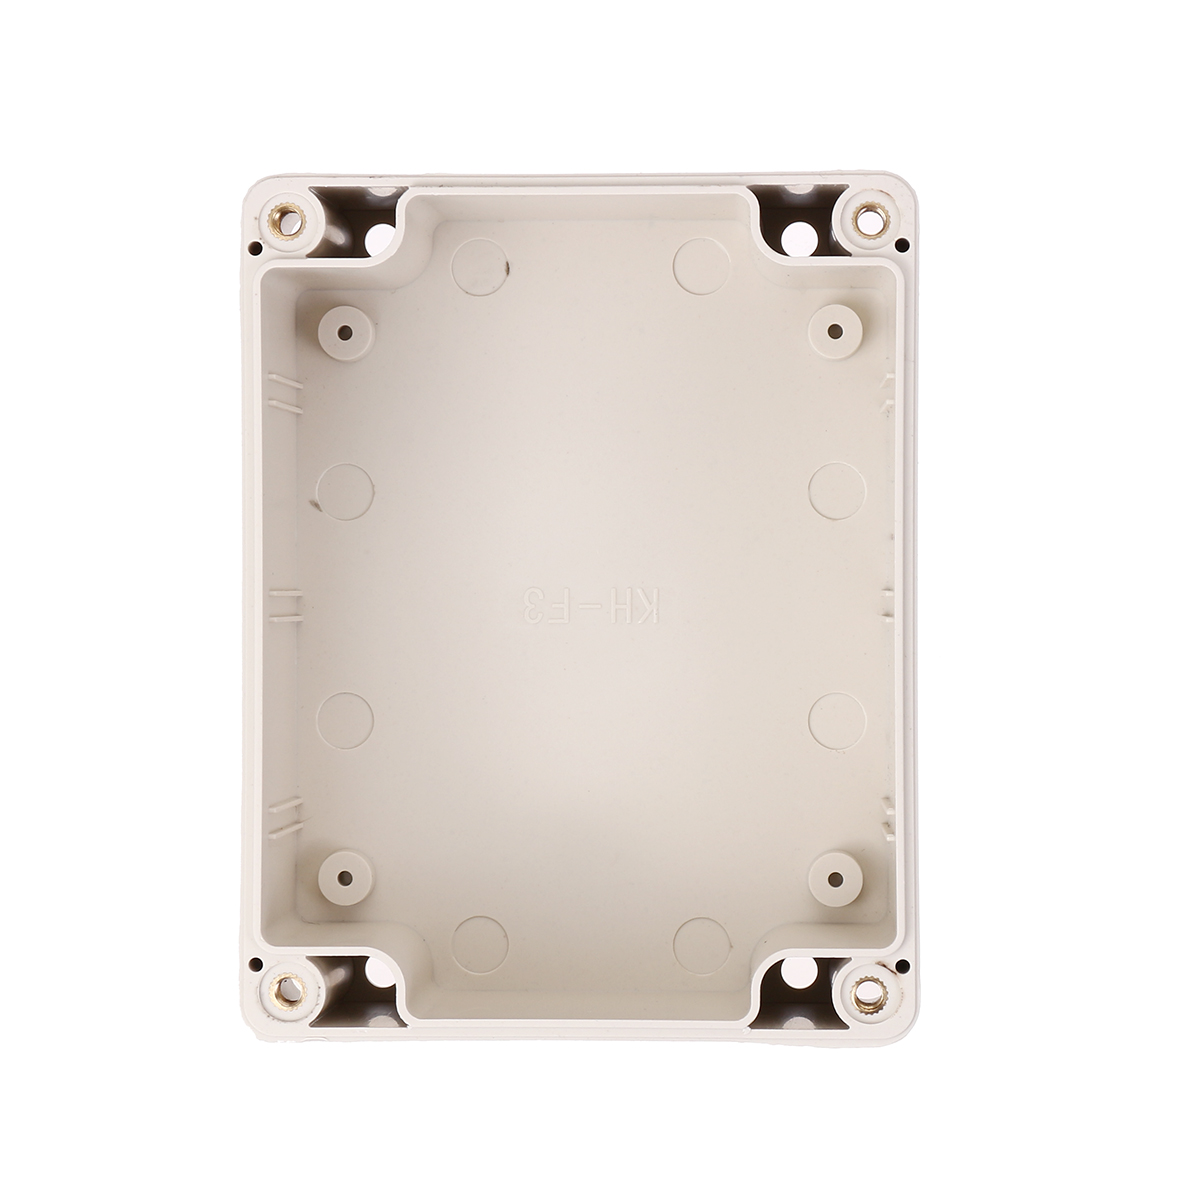 Plastic Waterproof Electronic Project Box Clear Cover Electronic Project Case 115*90*55mm